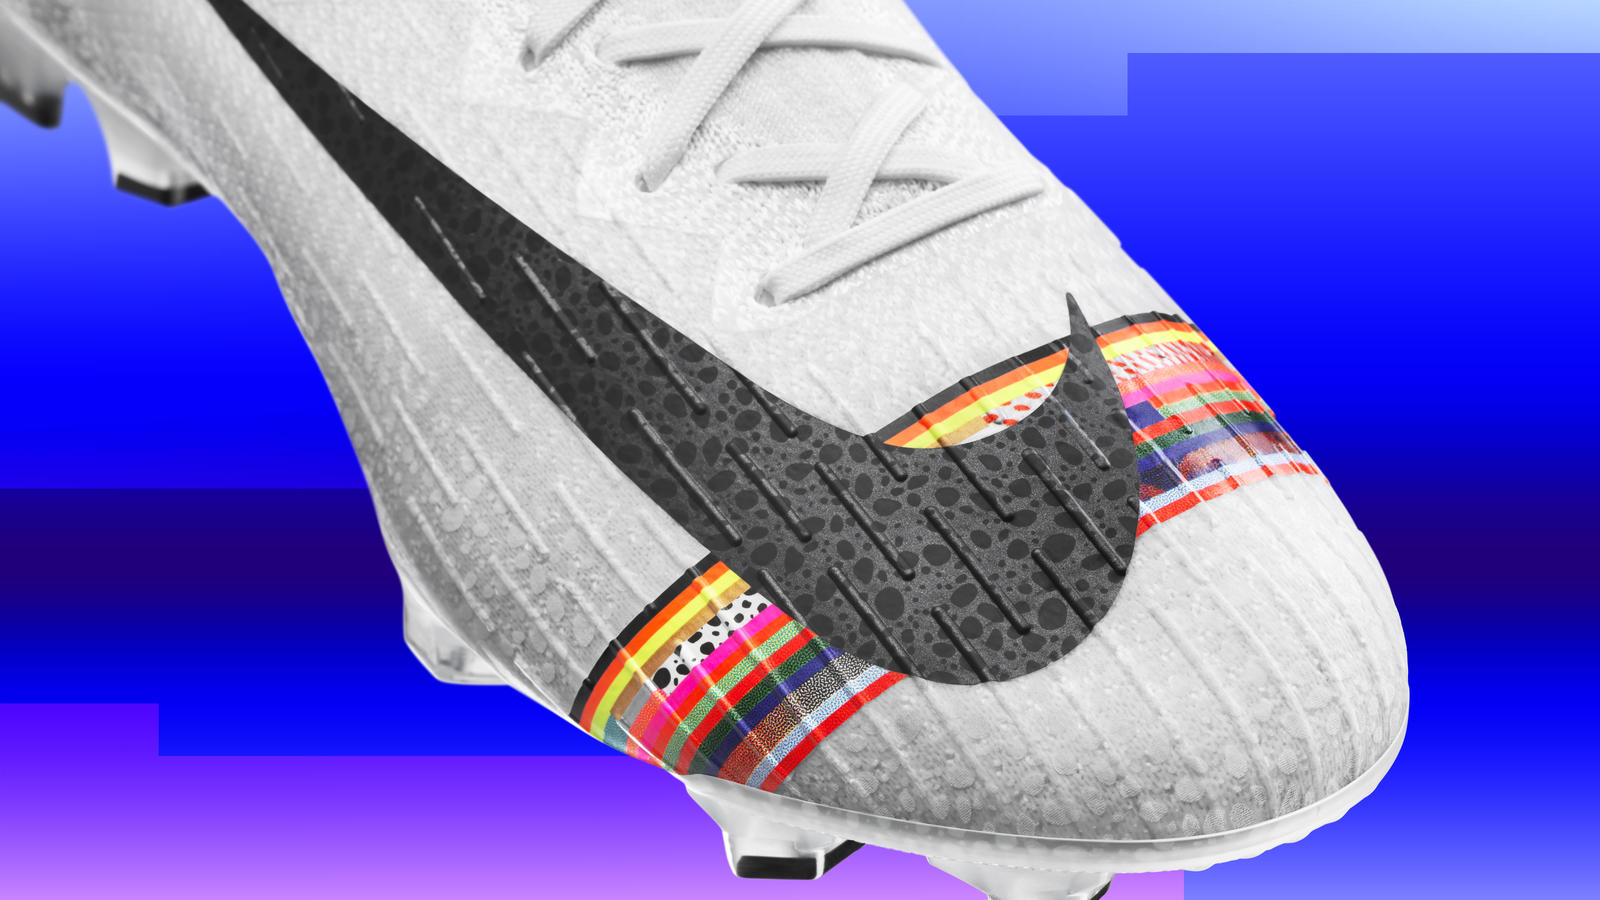 d3445b5a5247 Nike Mercurial Superfly360 'LVL UP' Released | Soccer Cleats 101